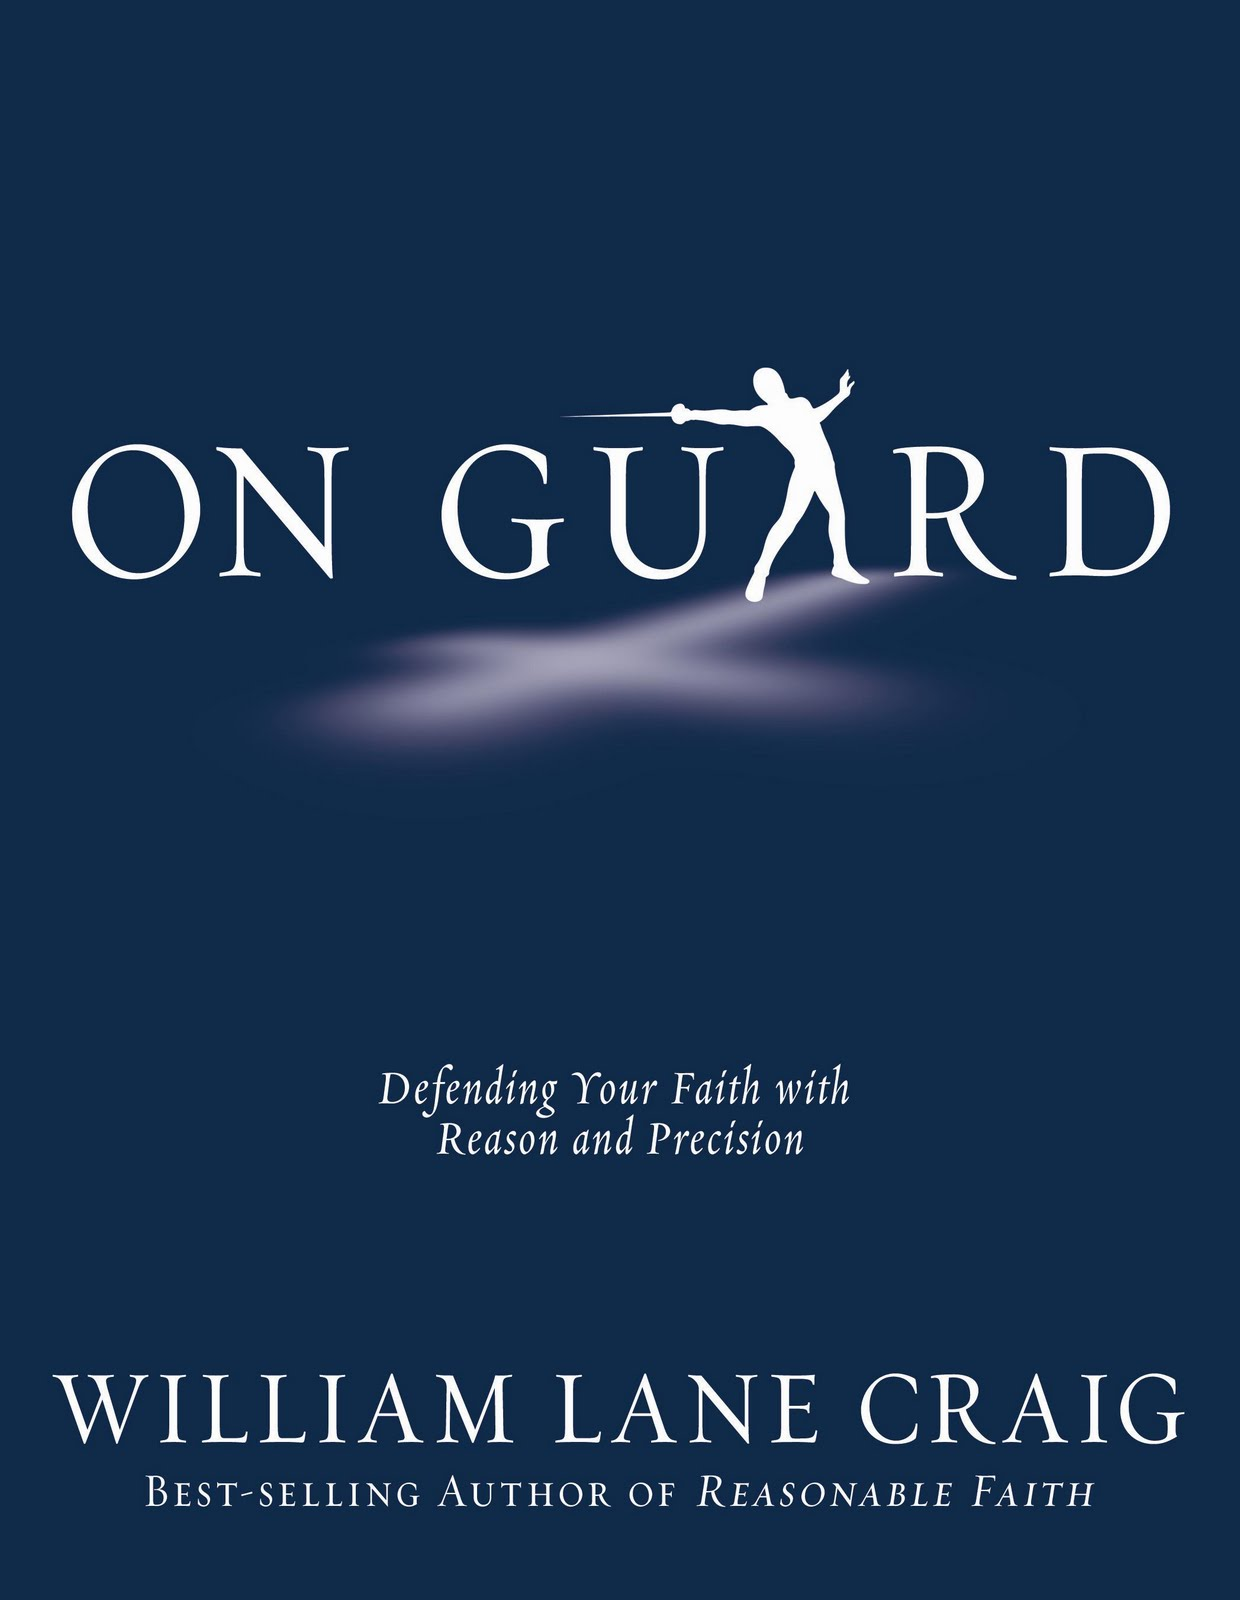 On Guard - This concise training manual by a renowned scholar is filled with illustrations, sidebars, and memorizable steps to help you stand your ground and defend your faith with reason and precision. In his engaging style, Dr. William Lane Craig offers four arguments for God's existence, defends the historicity of Jesus' personal claims and resurrection, addresses the problem of suffering, and shows why religious relativism doesn't work. Along the way, he shares his own story of following God's call.This one-stop, how-to-defend-your-faith manual will equip you to advance faith conversations deliberately, applying straightforward, cool-headed arguments. You will discover not just whatyou believe, but whyyou believe—and how being On Guard with the truth has the power to change lives forever.Click here to purchase from Koorong